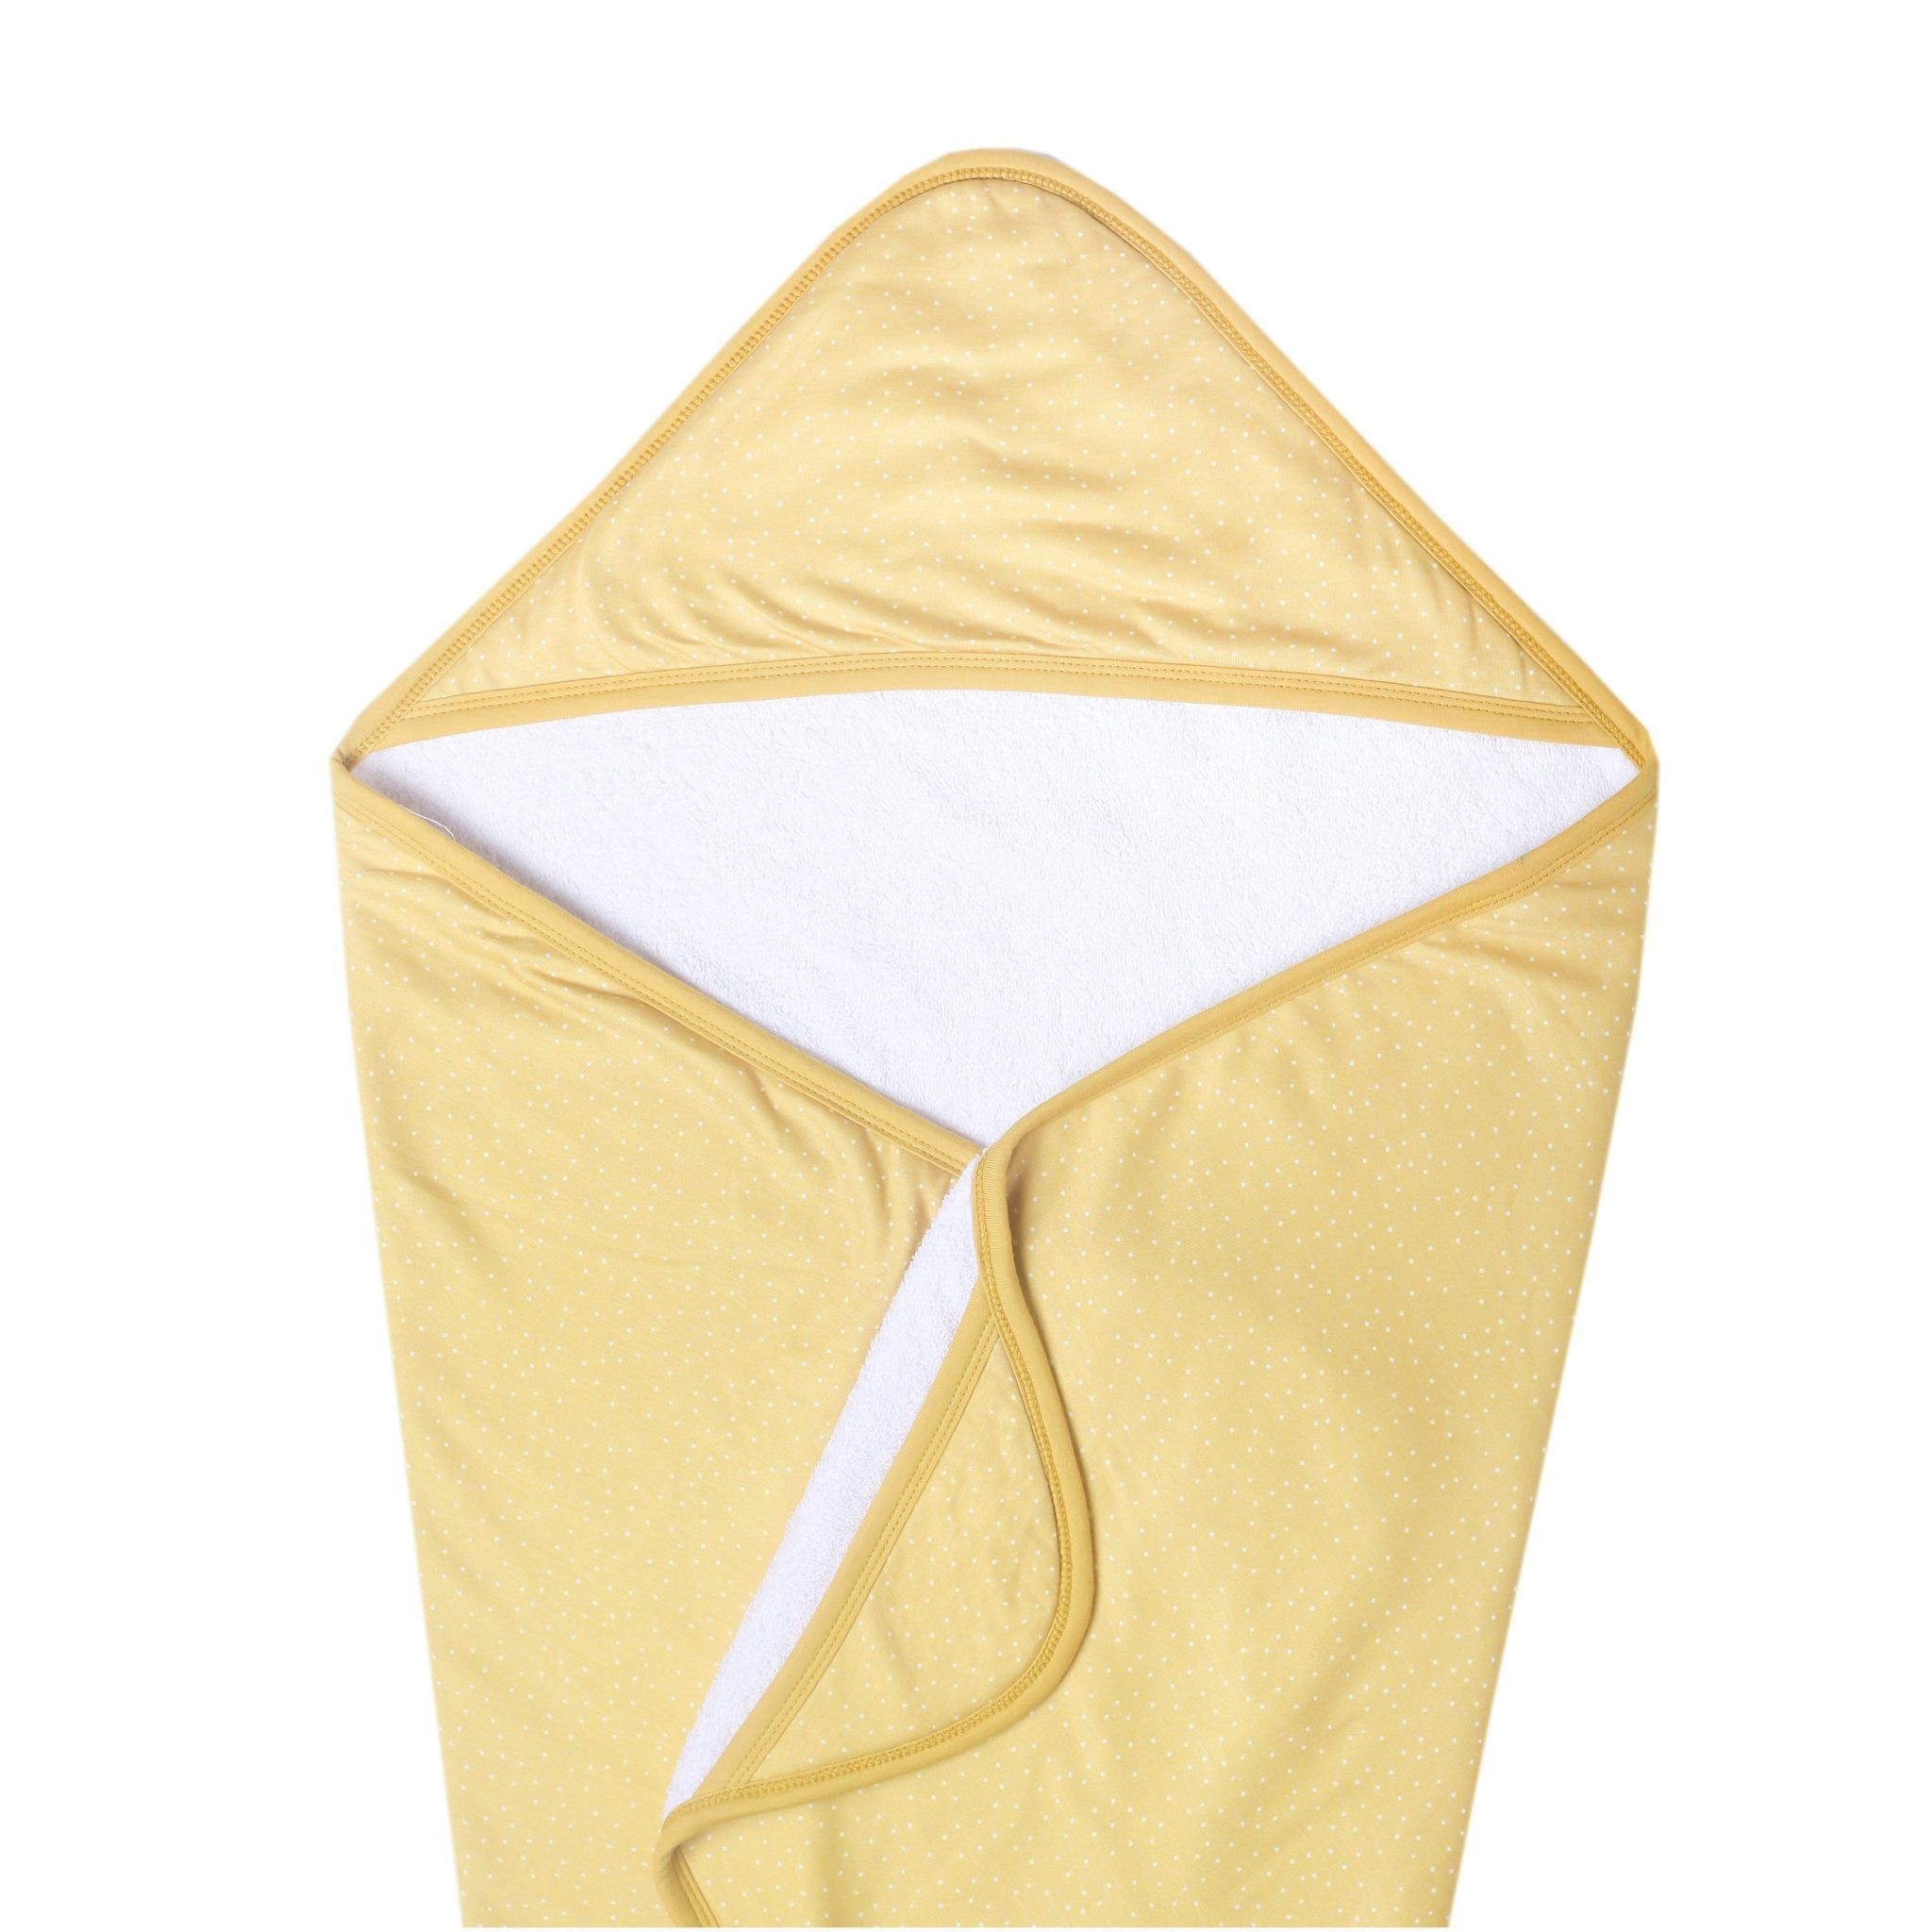 Copper Pearl Knit Hooded Towel - Marigold